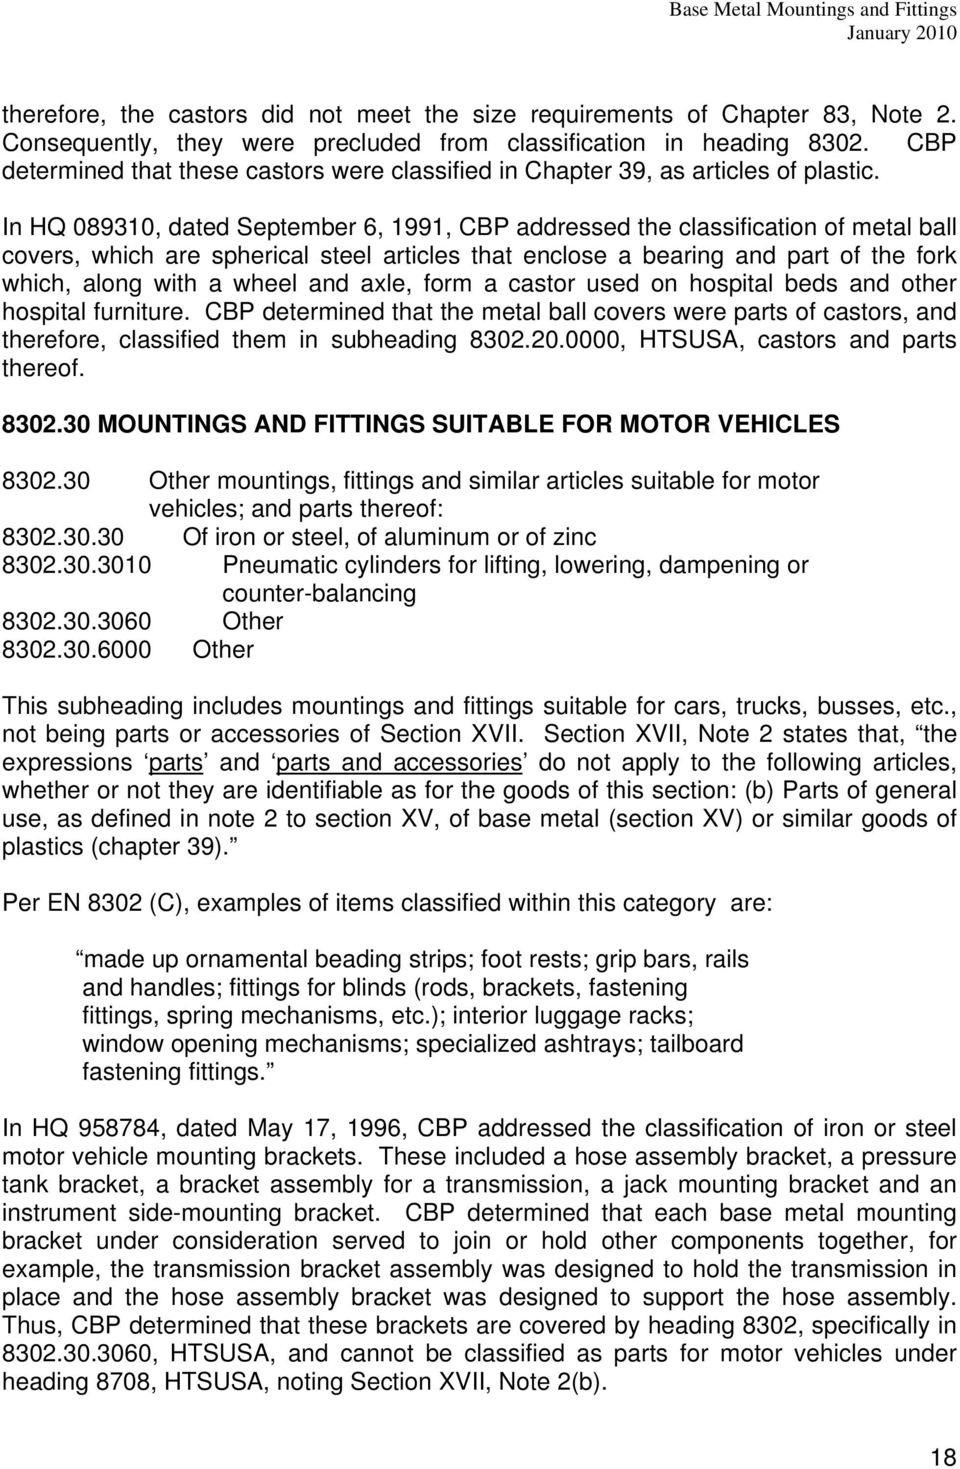 In HQ 089310, dated September 6, 1991, CBP addressed the classification of metal ball covers, which are spherical steel articles that enclose a bearing and part of the fork which, along with a wheel